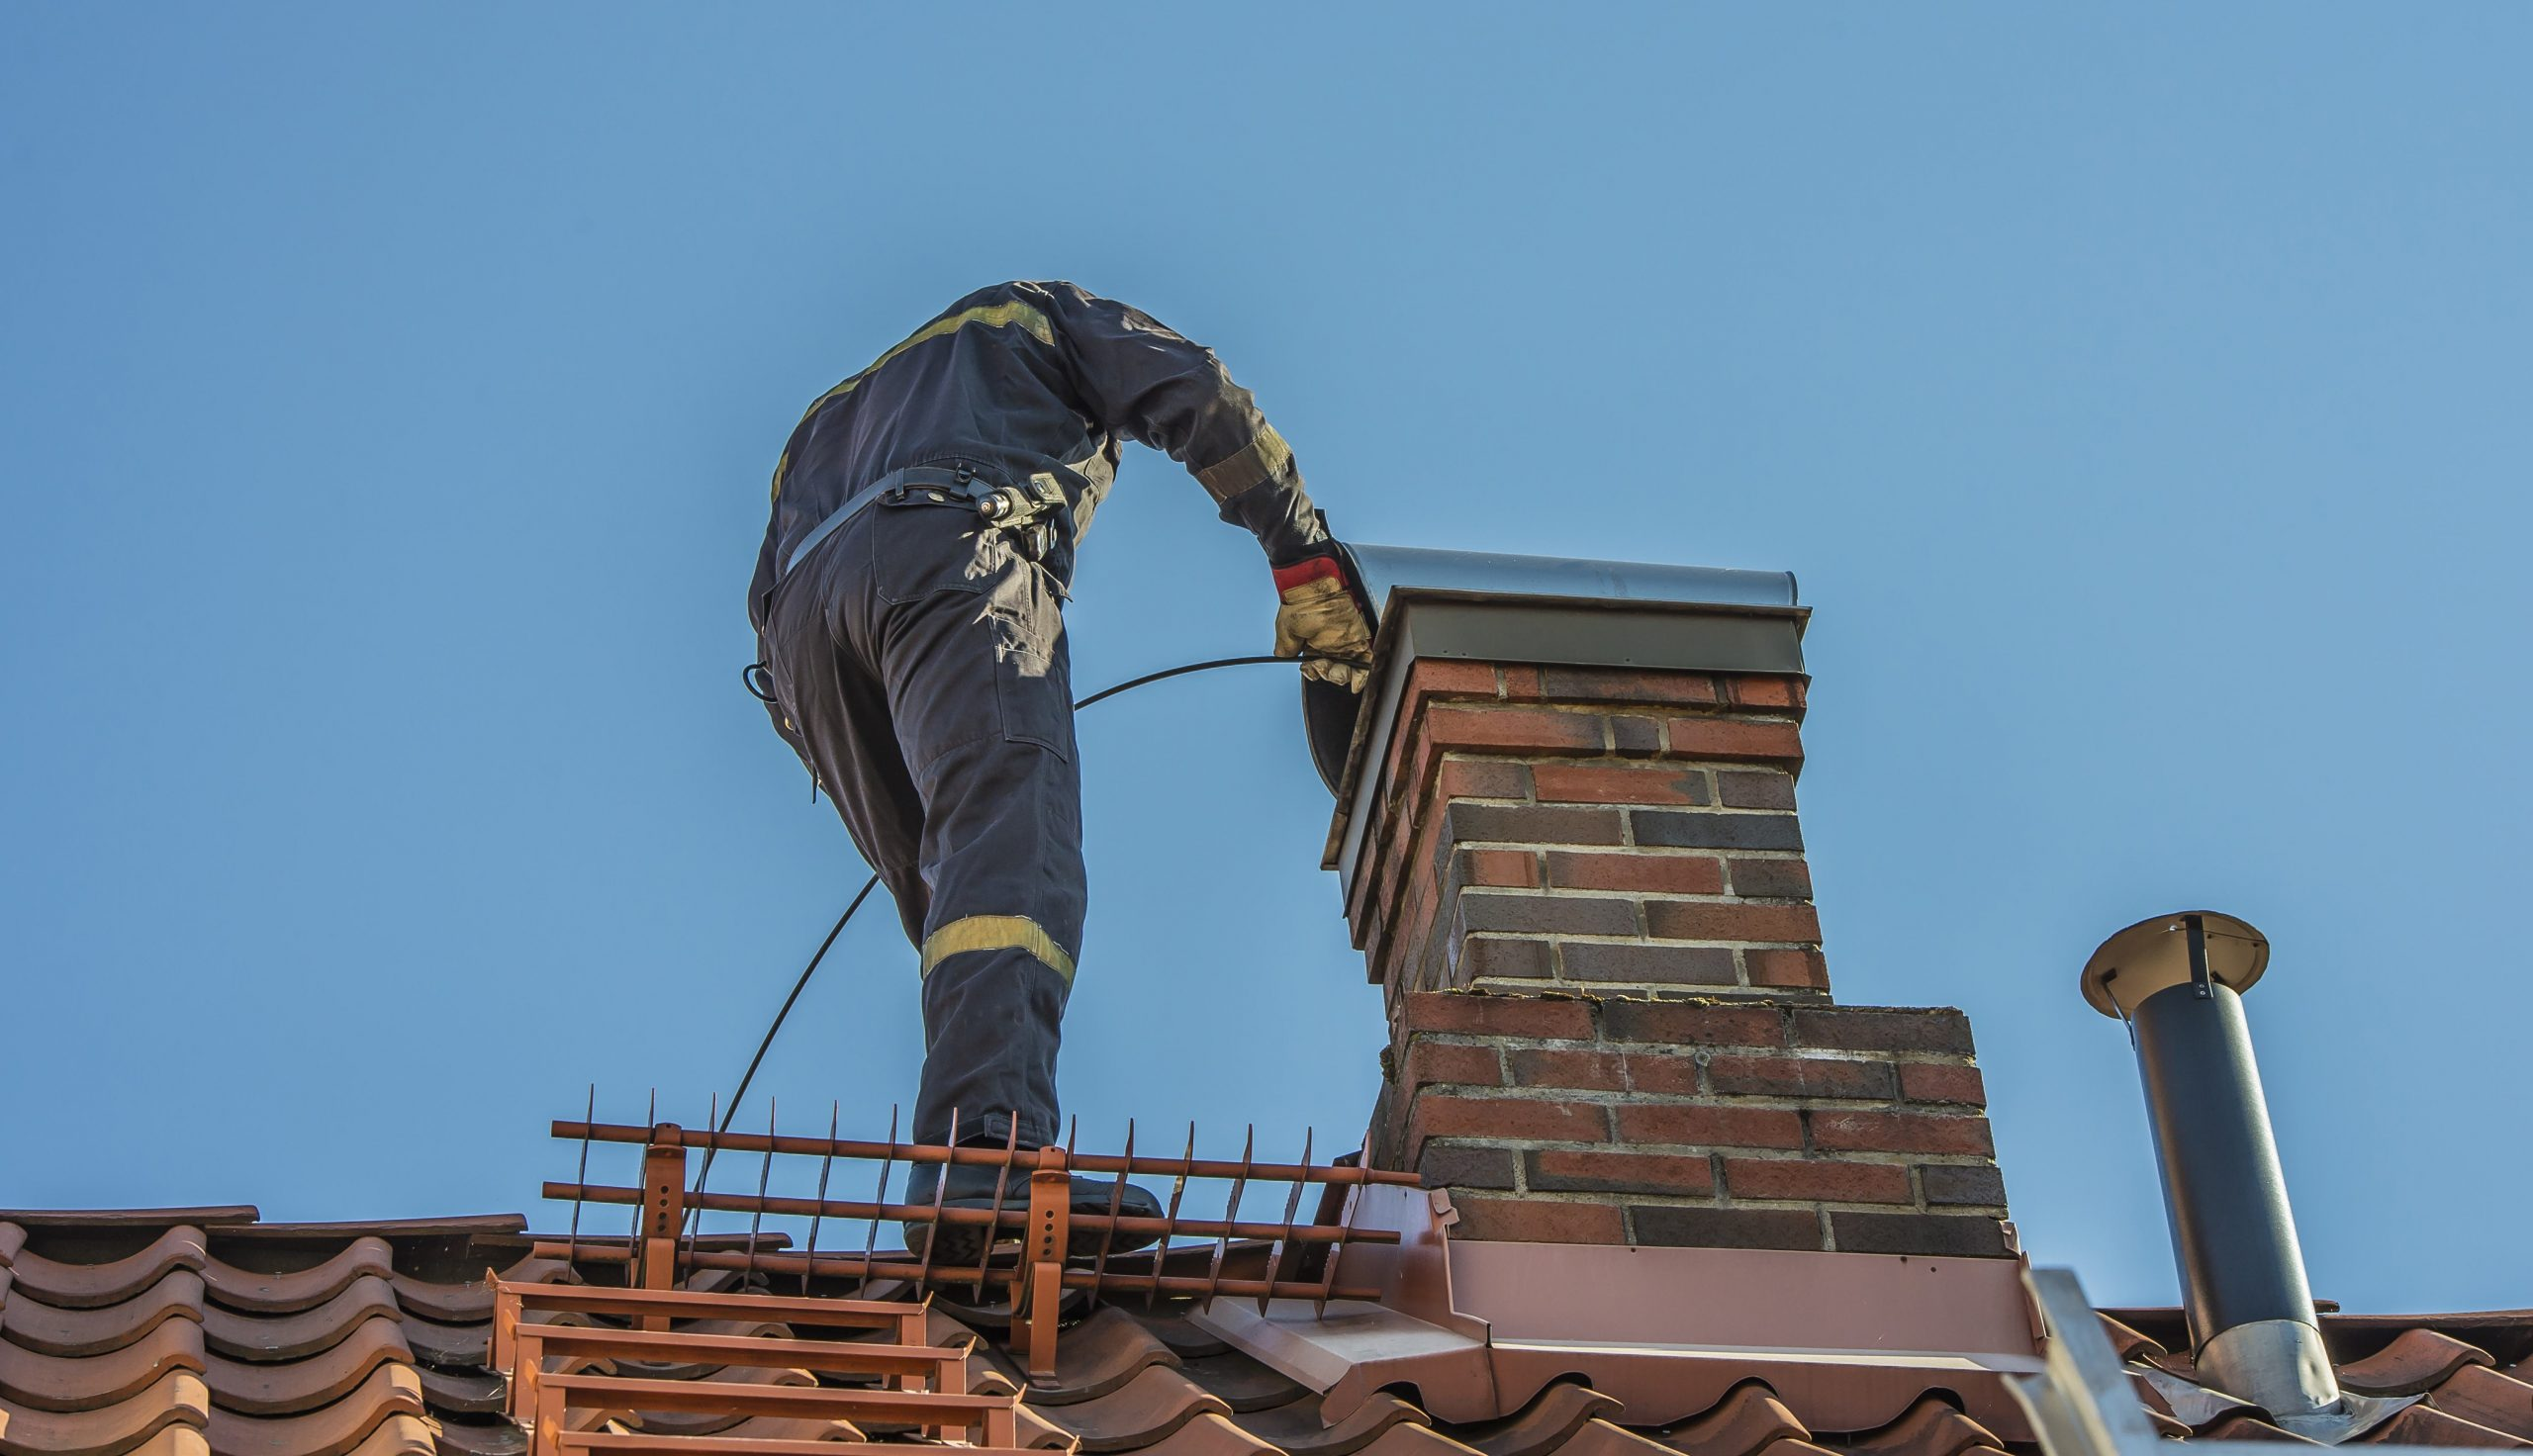 American Chimney Cleaning, Harrisonville Missouri American Chimney Cleaning, Chimney Cleaning